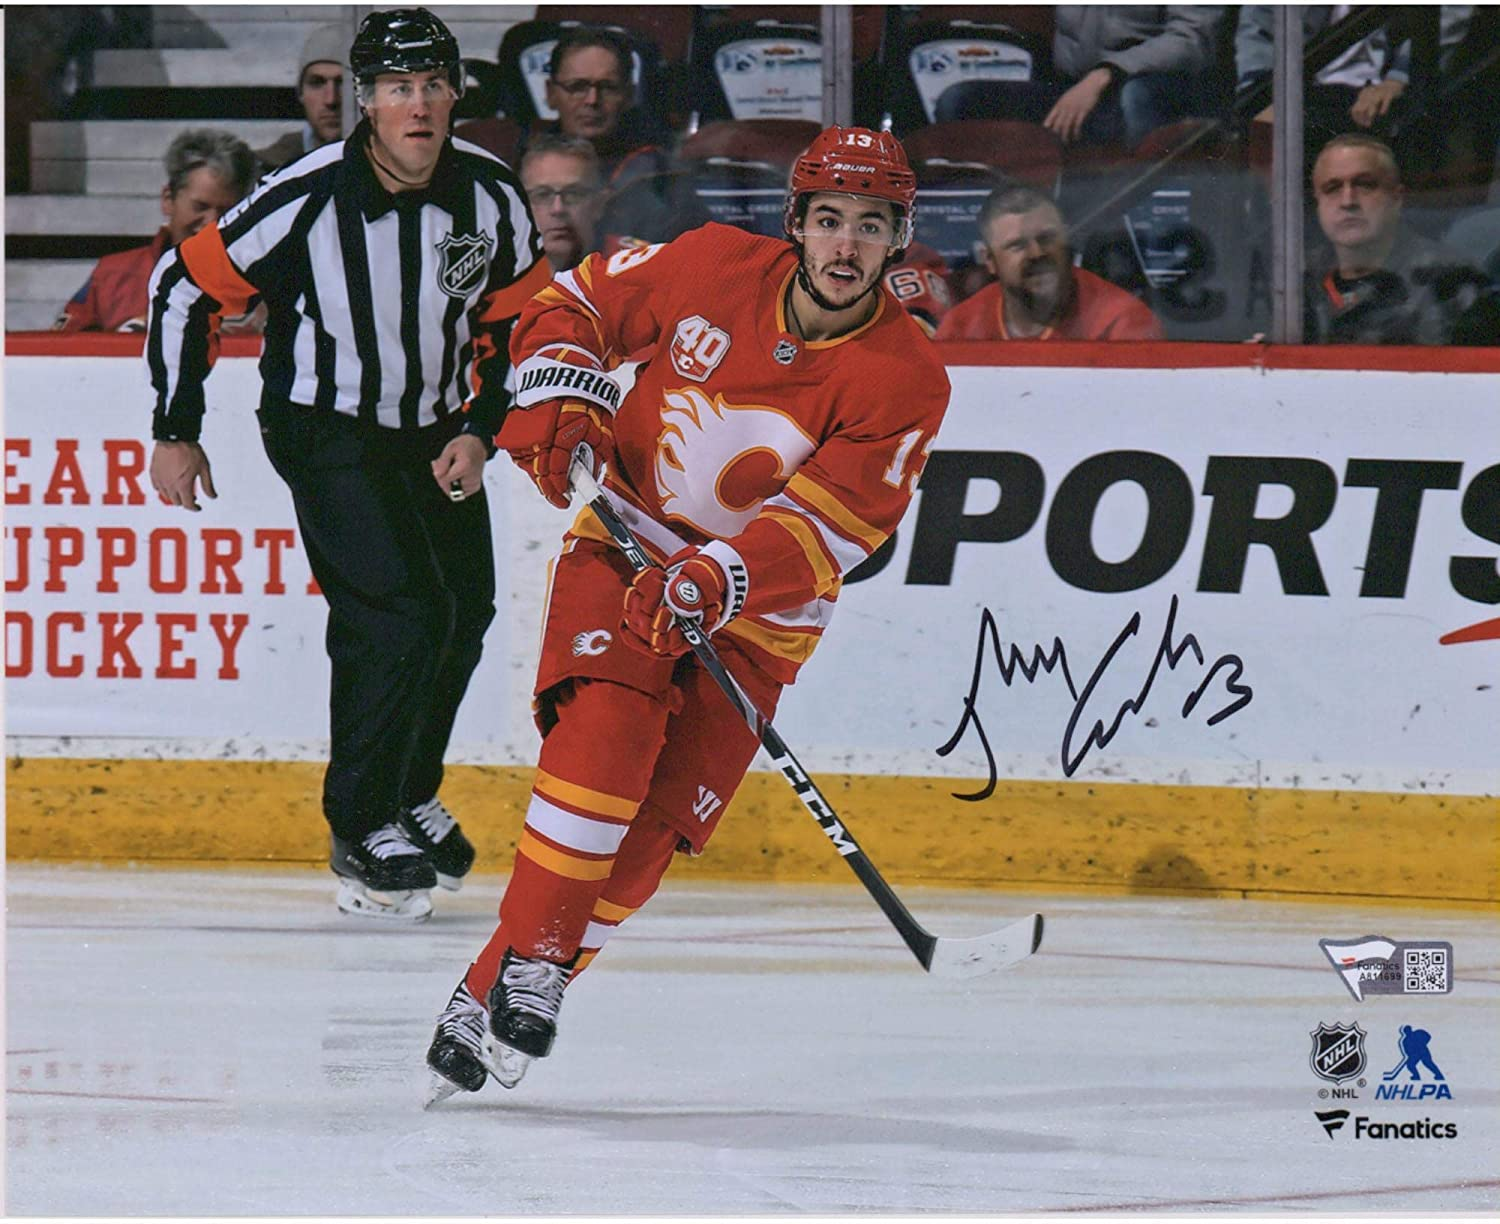 Johnny Gaudreau Calgary Flames Autographed 8 X 10 Red Alternate Jersey Skating Photograph Autographed Nhl Photos At Amazon S Sports Collectibles Store